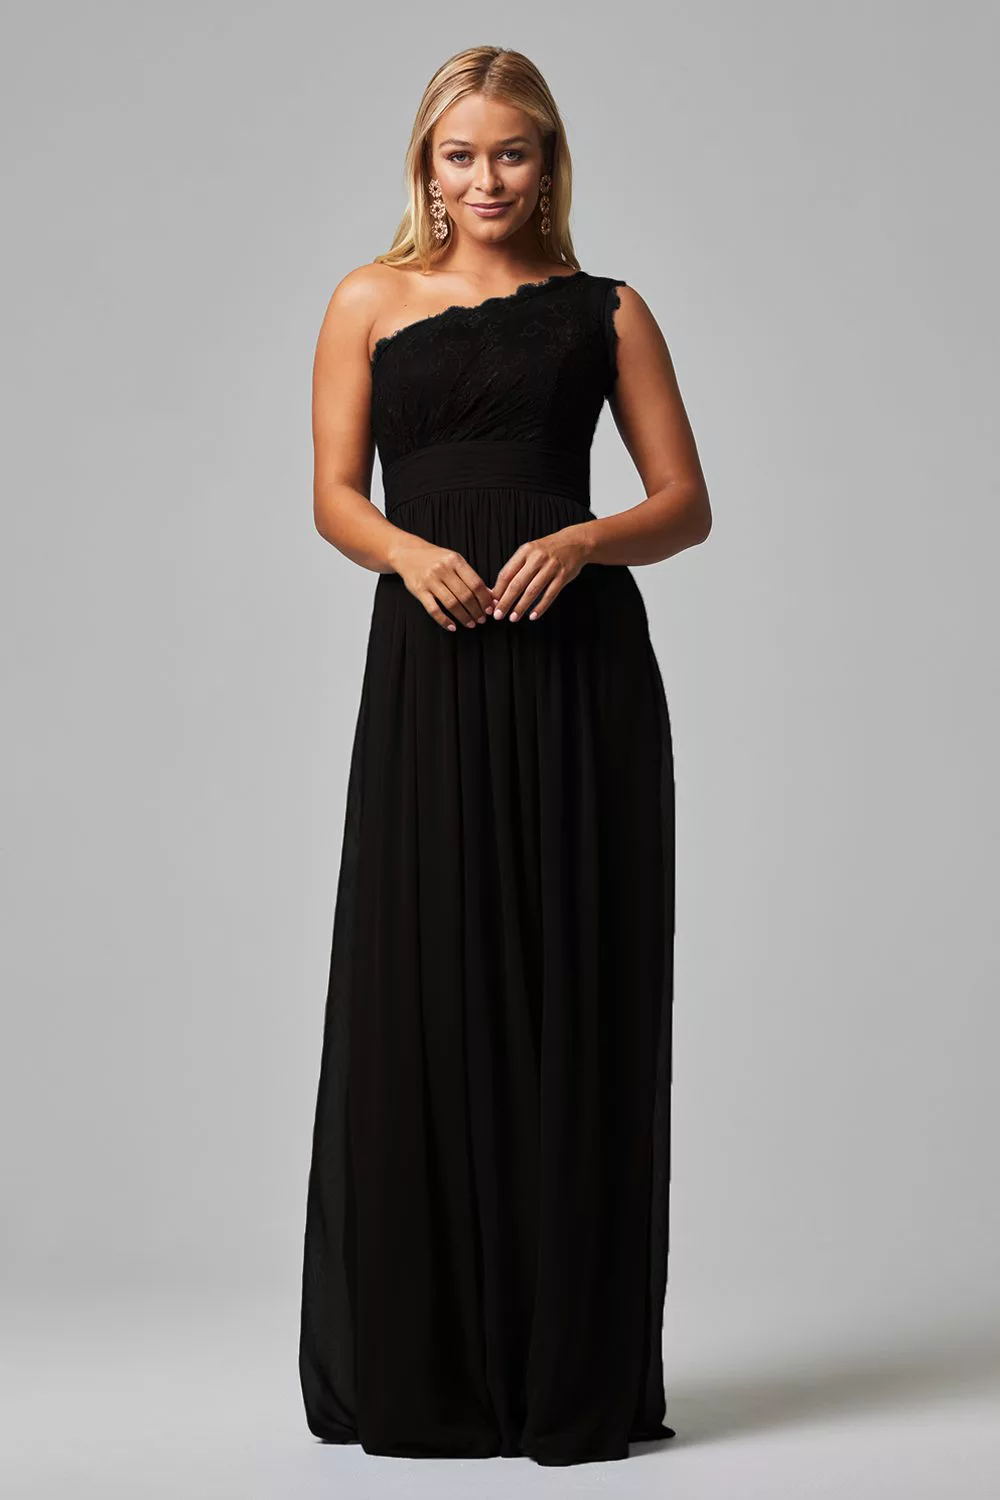 Bridget Bridesmaids Dress by Tania Olsen - Black